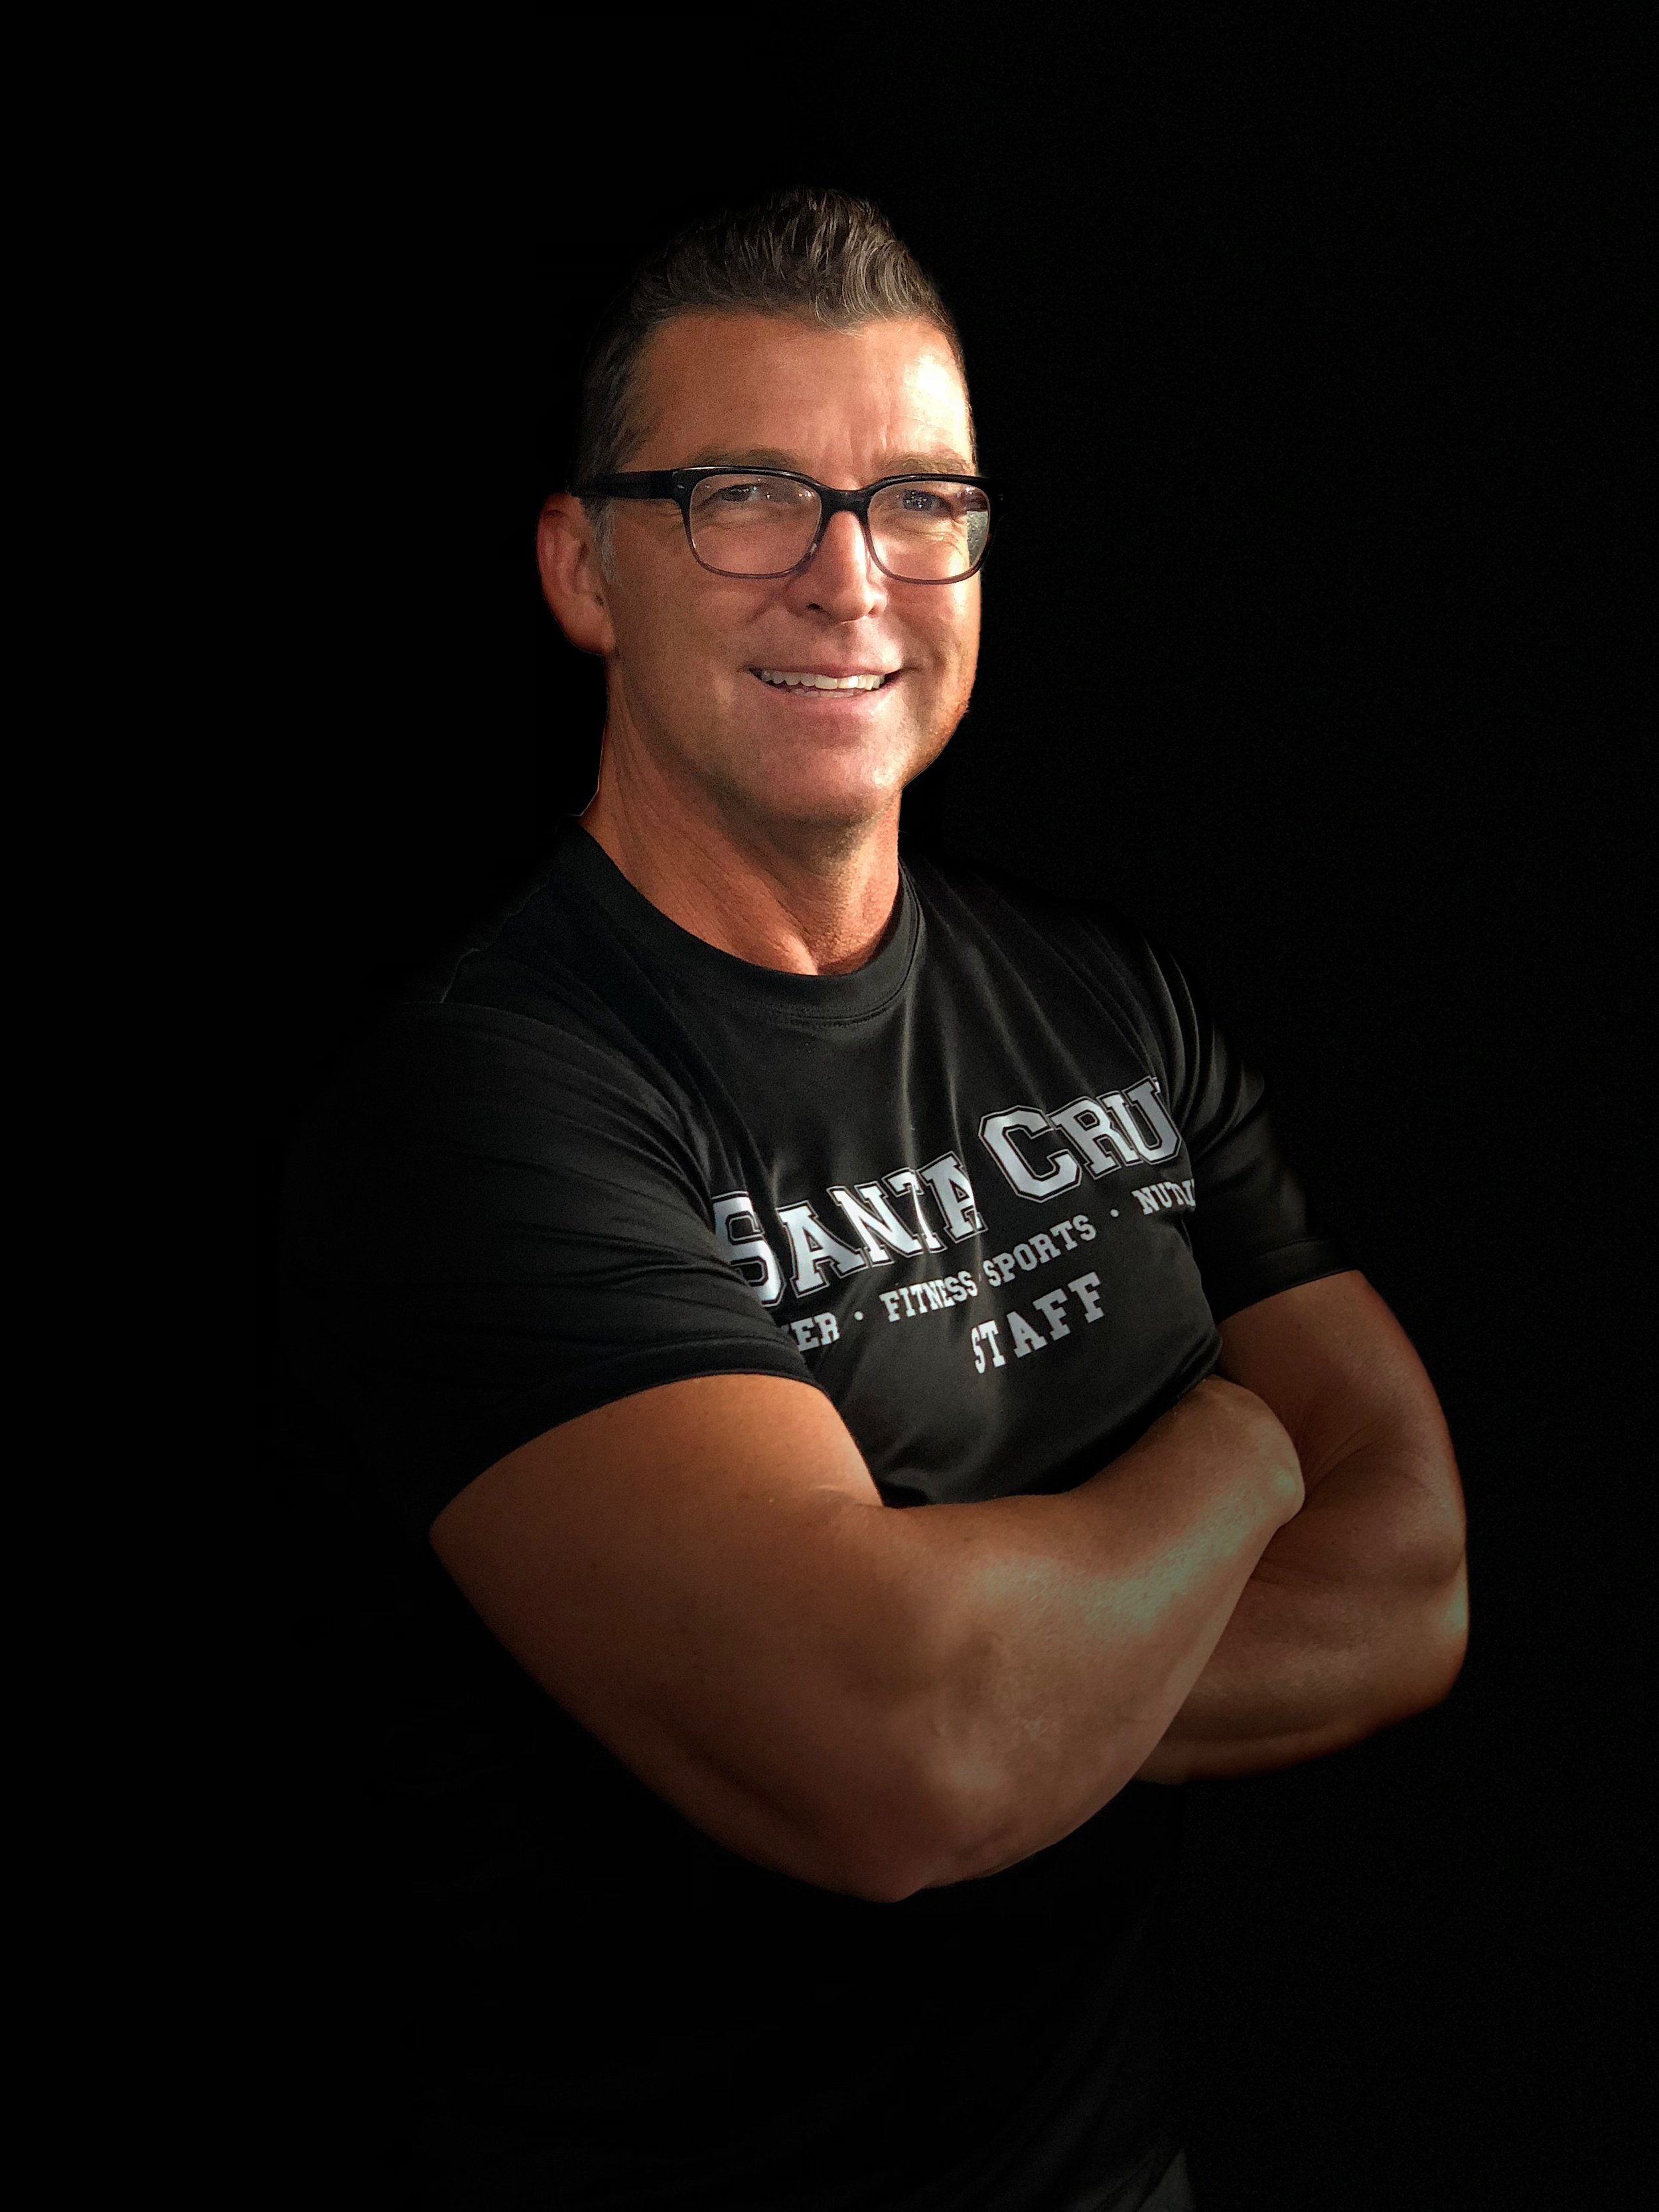 Kevin Carter  NASM certified and Beach Body Health and Nutrition Coach  Specialties: Mobility, conditioning, corrective exercise  Years of Experience: 5 years  Social:  @coachkevcarter